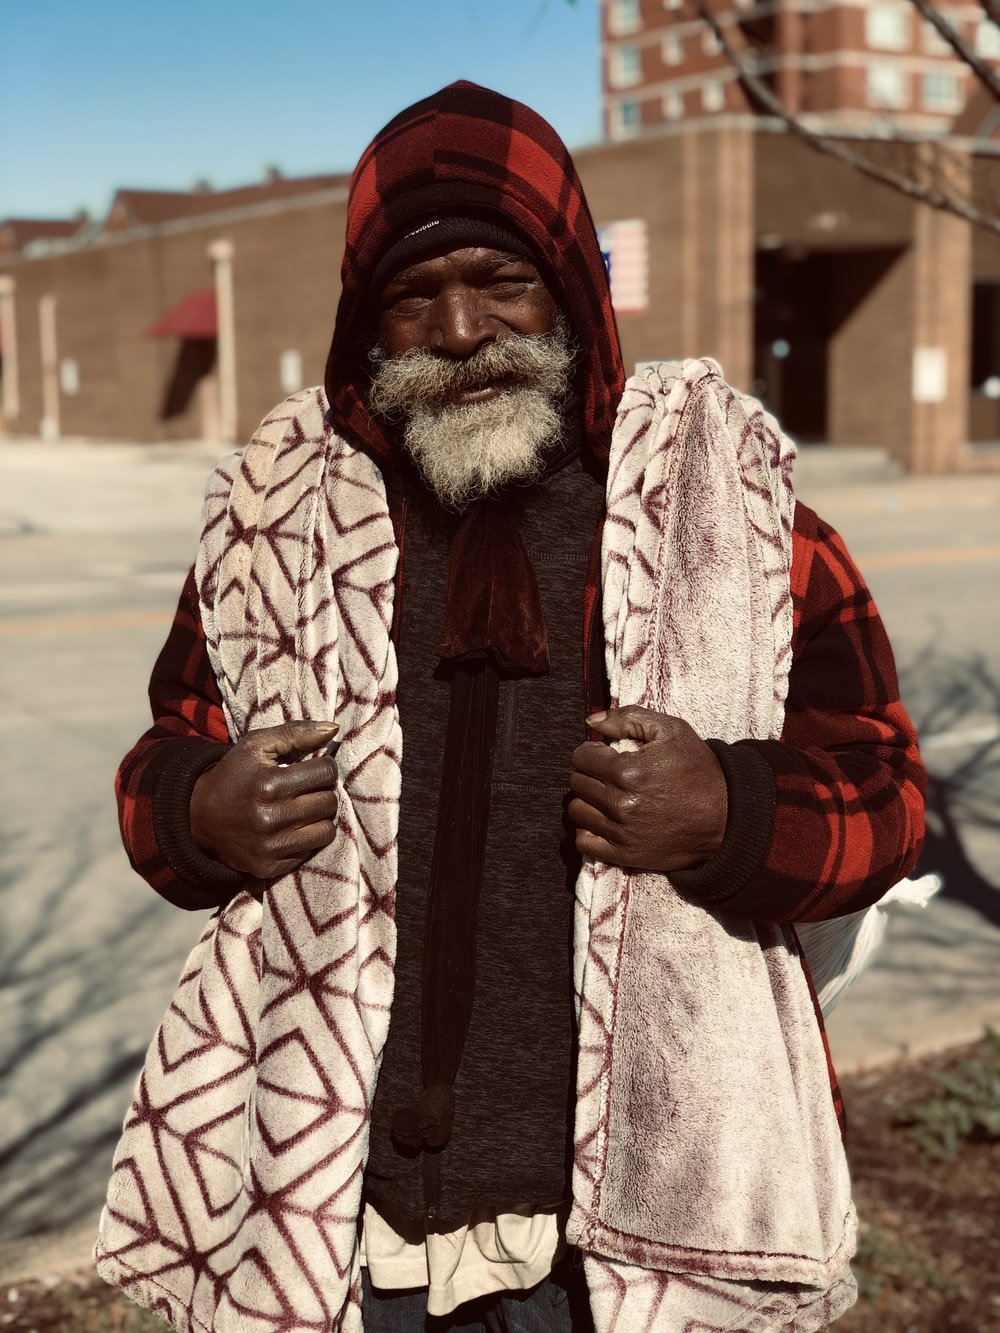 man in red and black coat standing during daytime